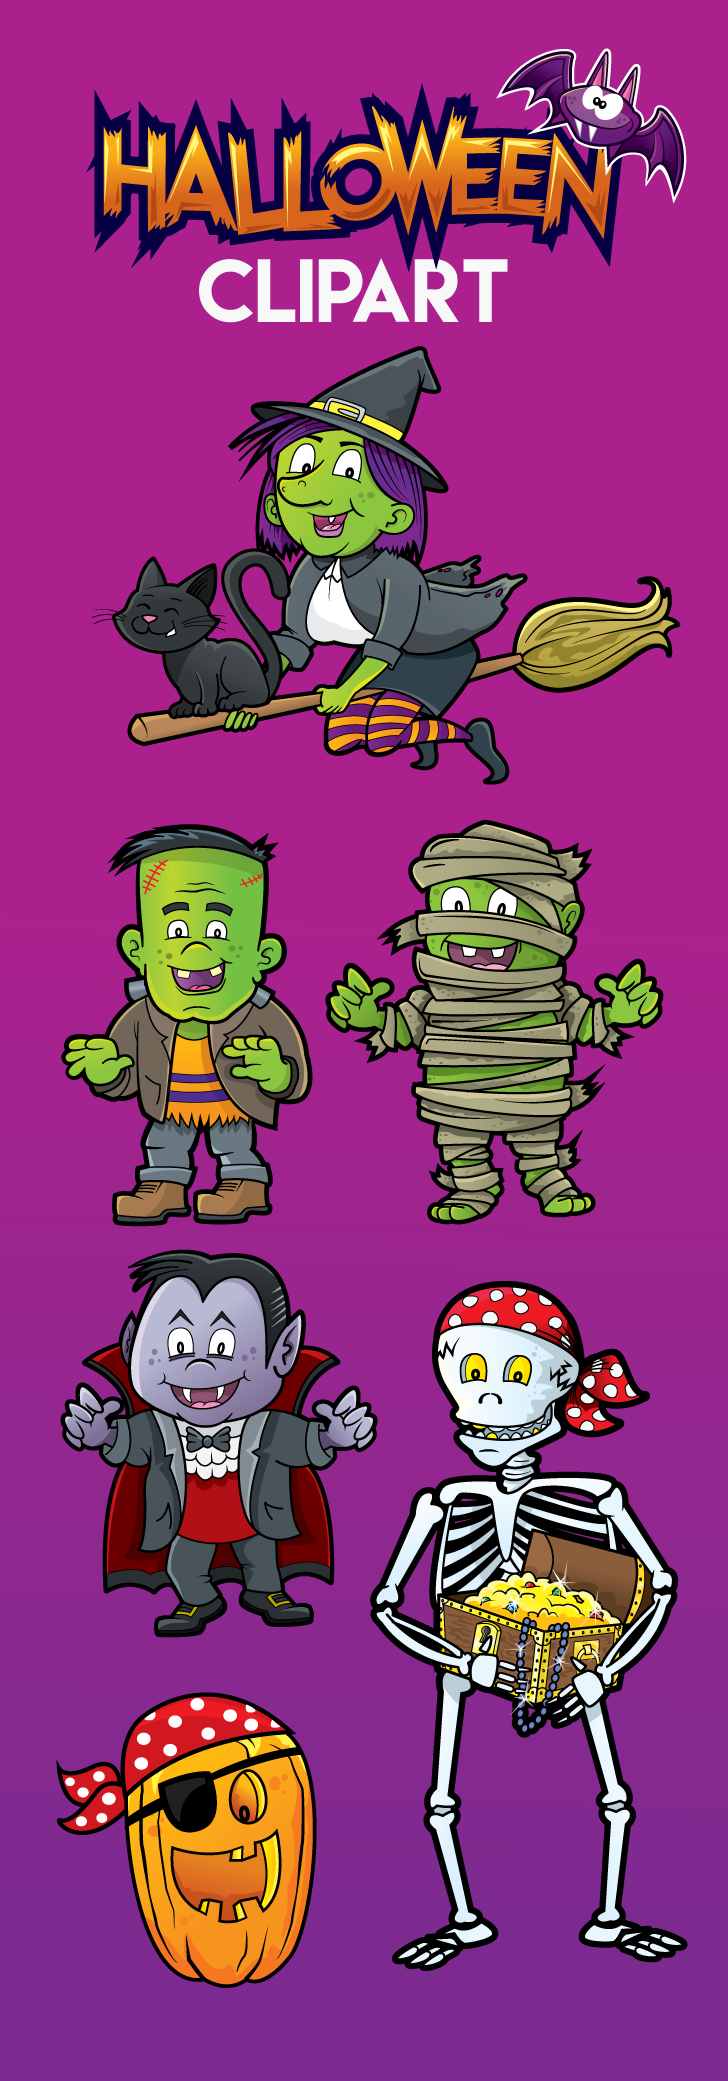 Download individual files or complete Halloween clipart